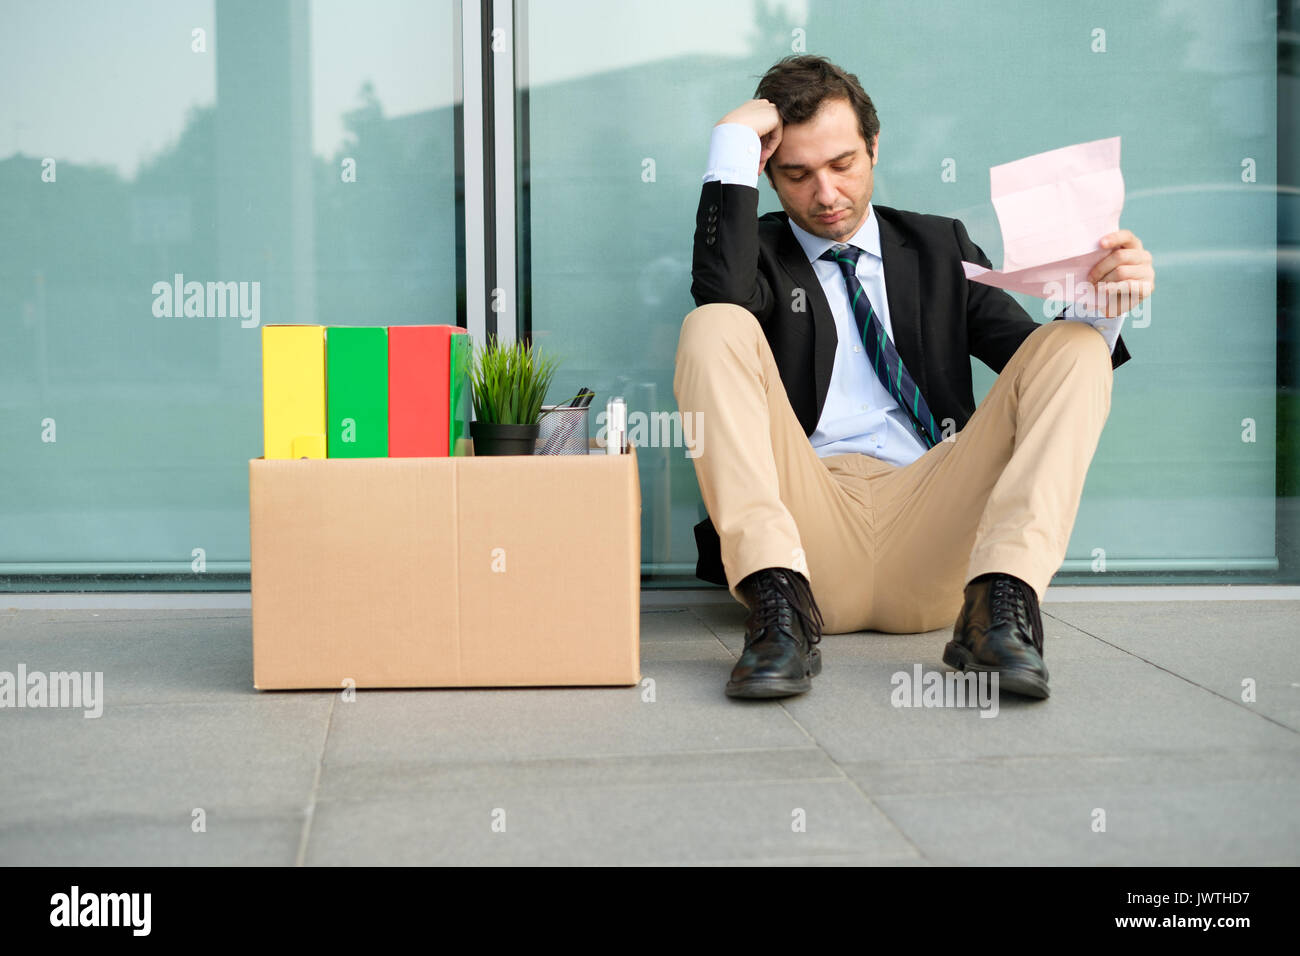 Fired businessman reading the notice of job termination outside a financial district building - Stock Image